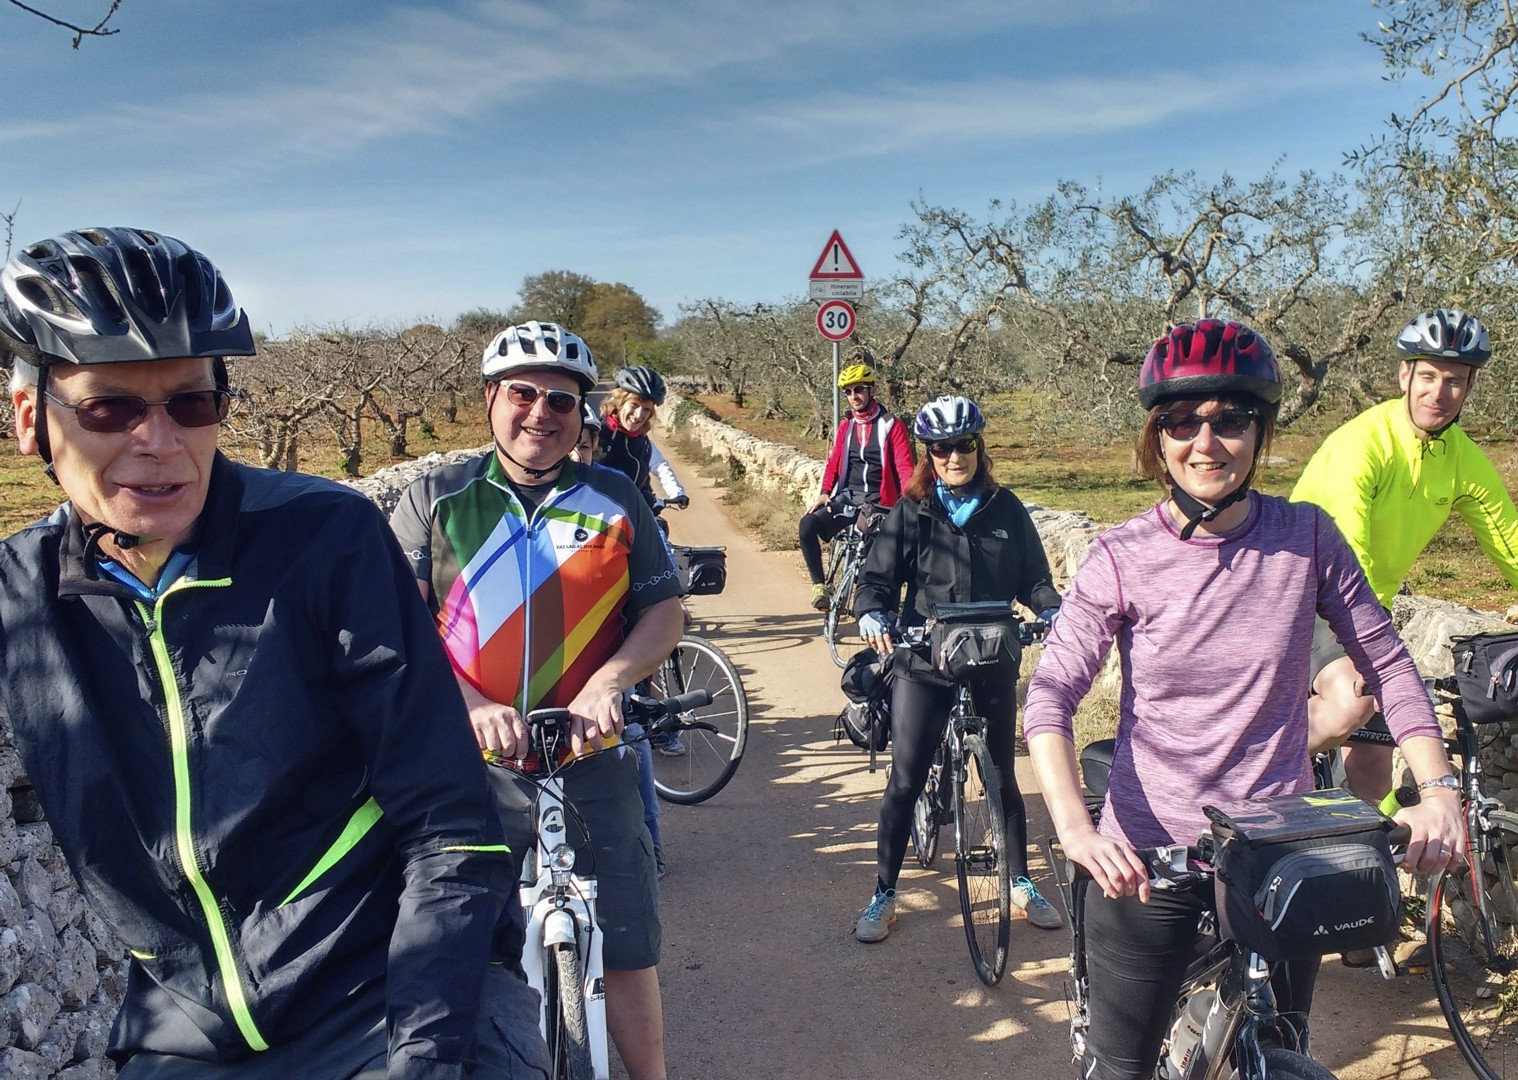 cycling-holiday-group-cyclists-puglia-italy.jpg - Italy - Puglia - Guided Leisure Cycling Holiday - Leisure Cycling